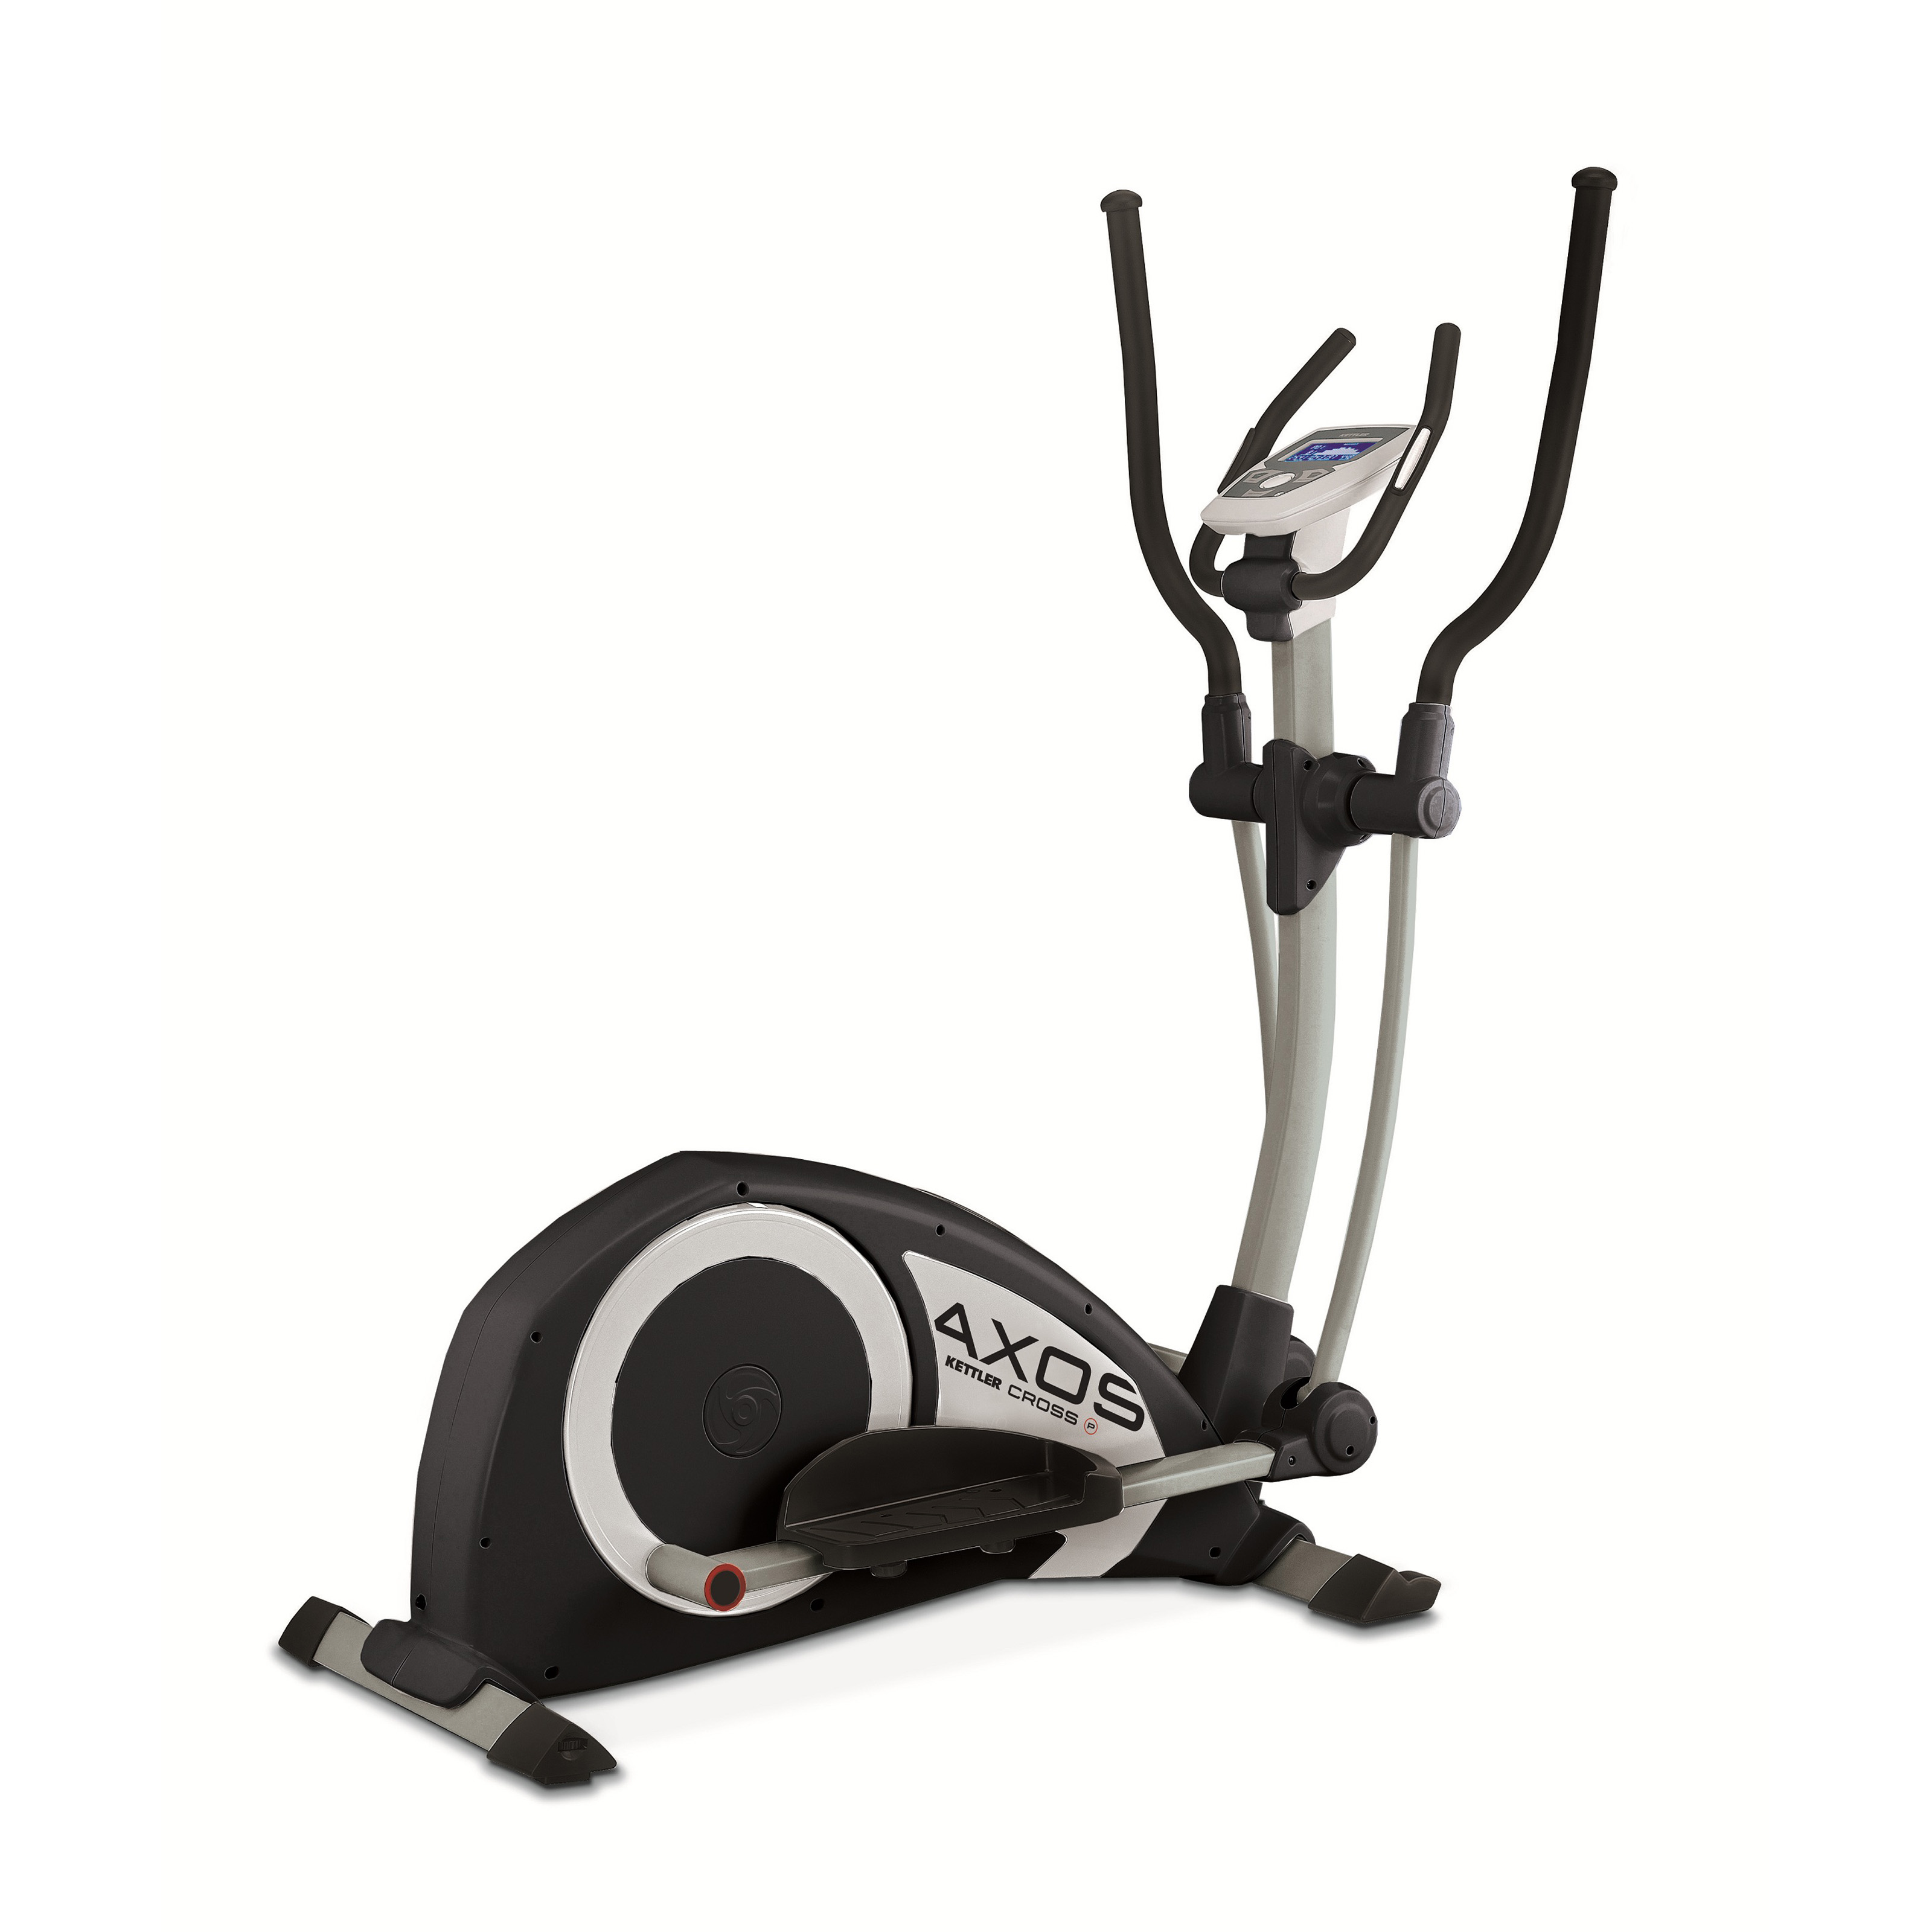 Kettler Garden Master Kettler Axos Cross P Elliptical Cross Trainer At Hayneedle